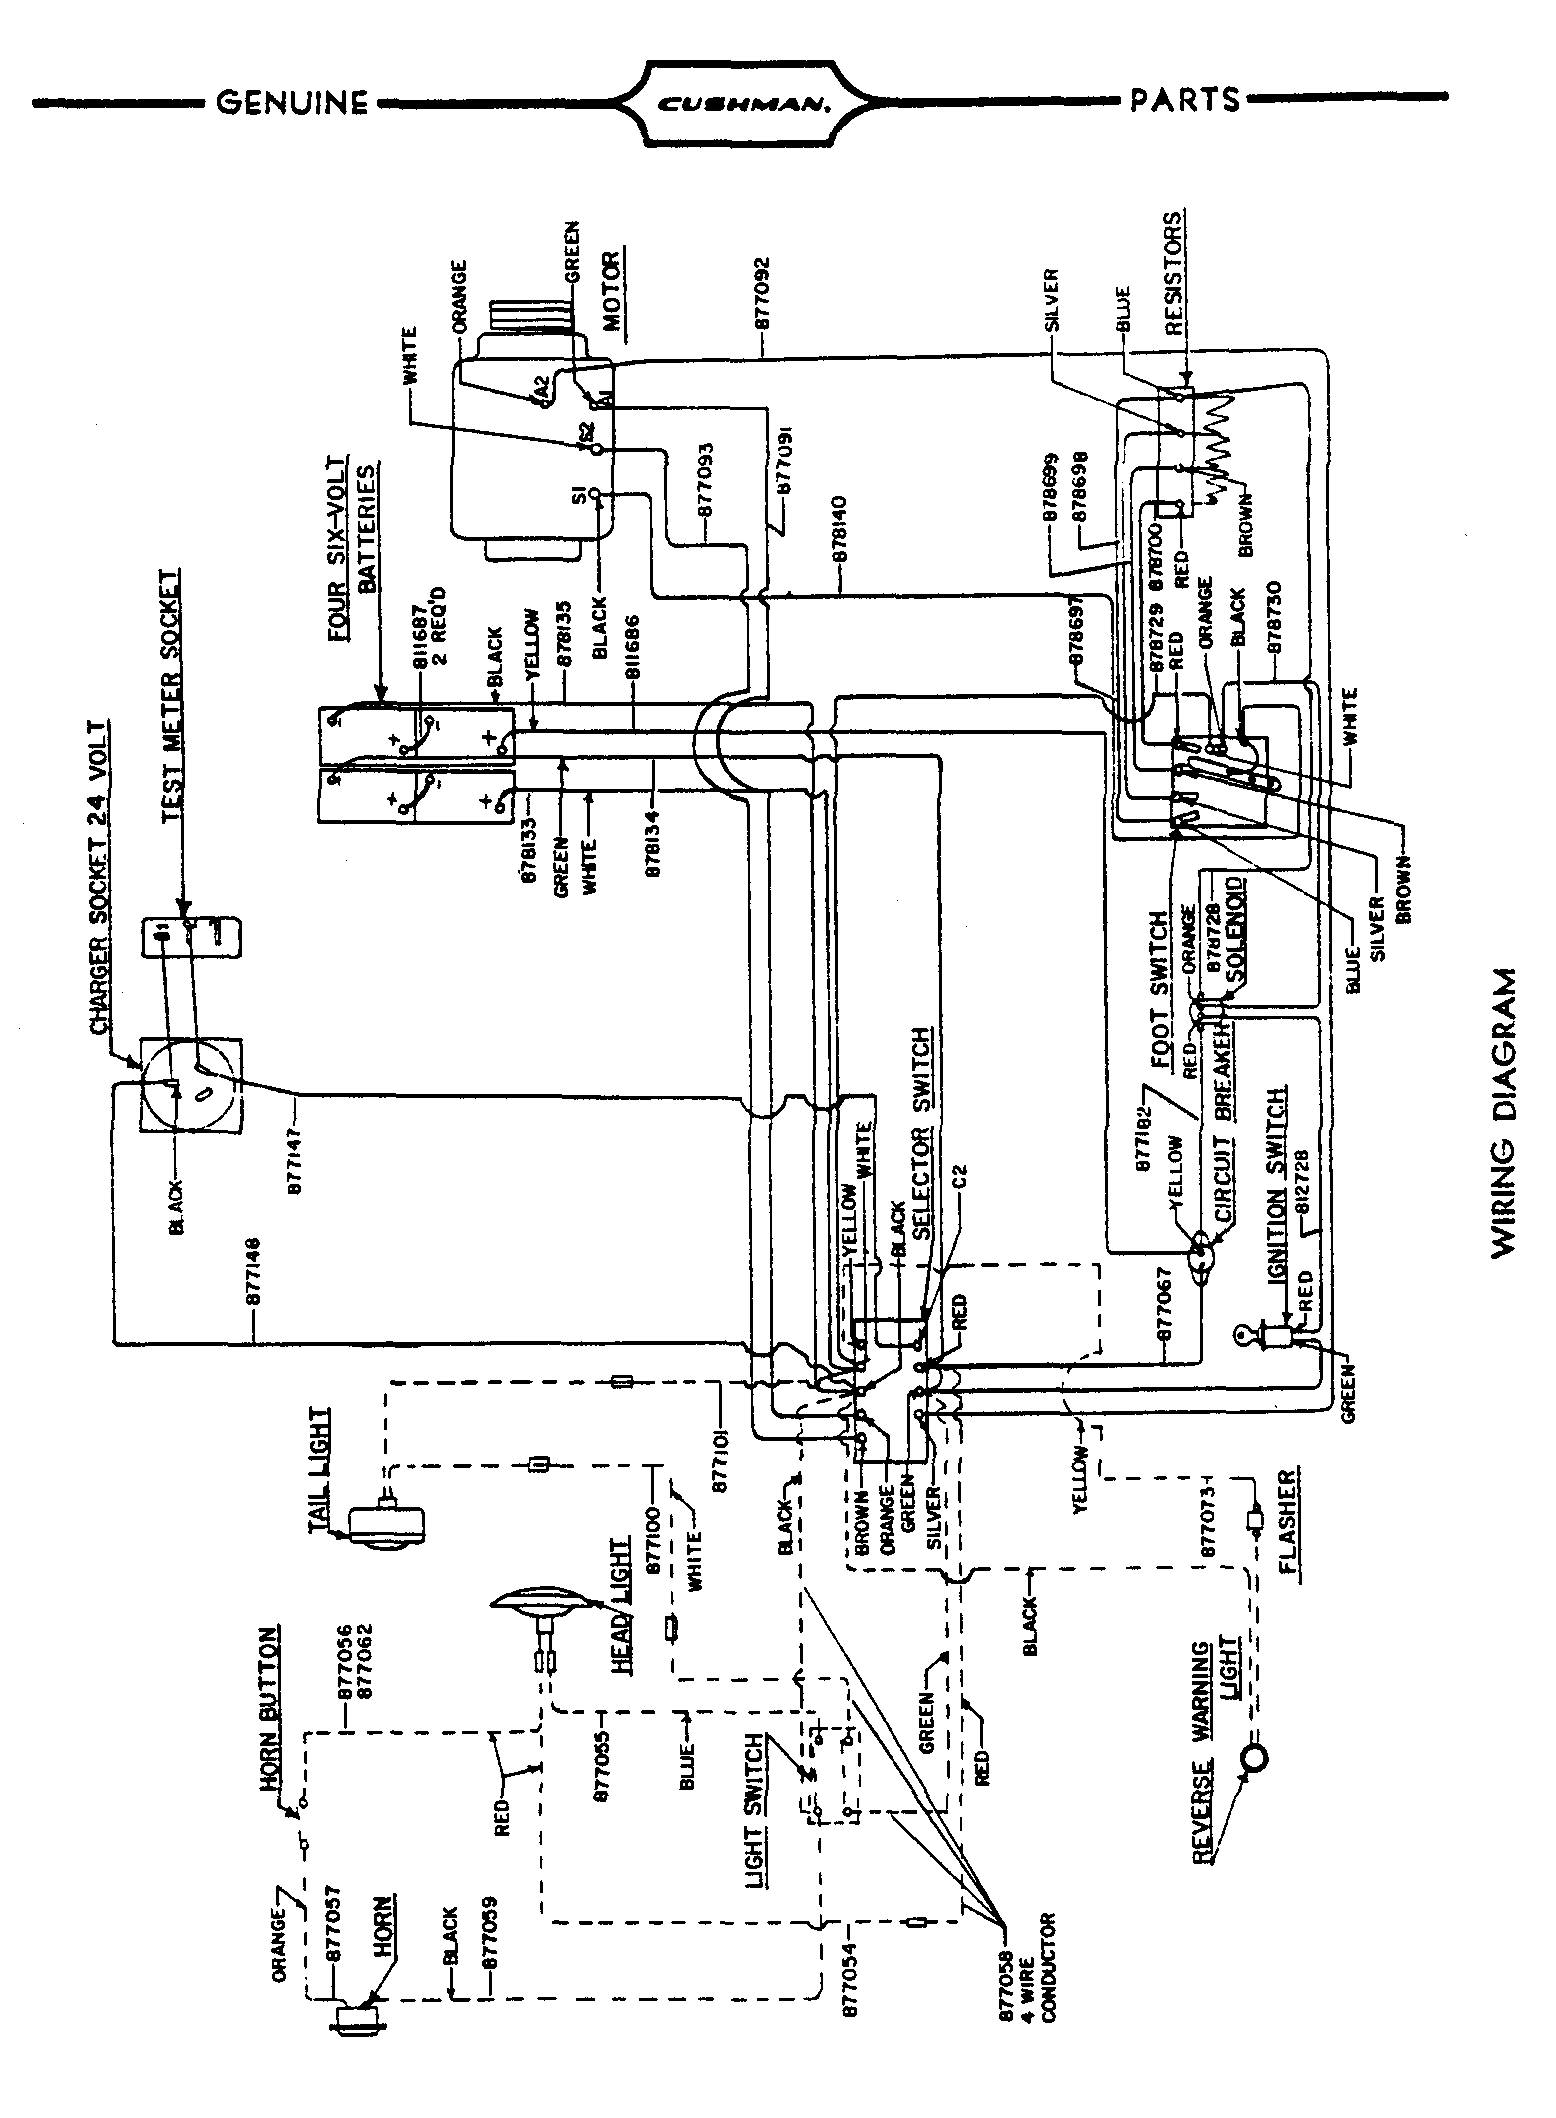 Charming Cushman 36 Volt Wiring Diagram Pictures Inspiration | 2118